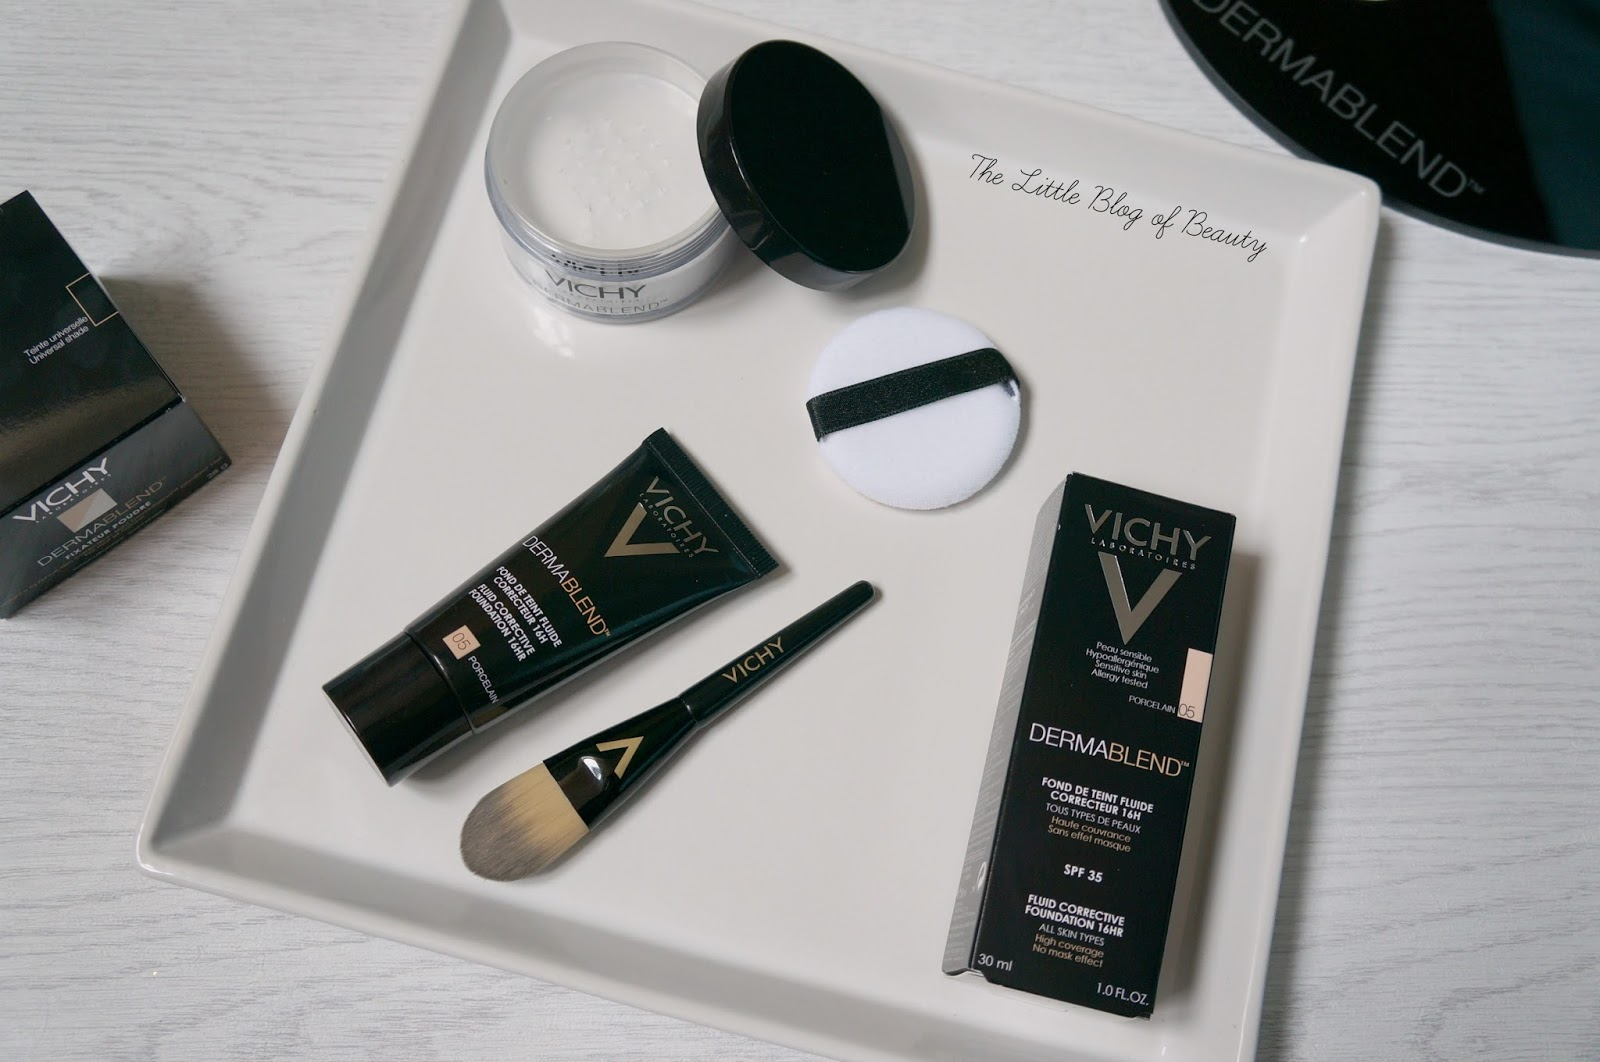 Vichy Dermablend Corrective fluid foundation and setting powder ...